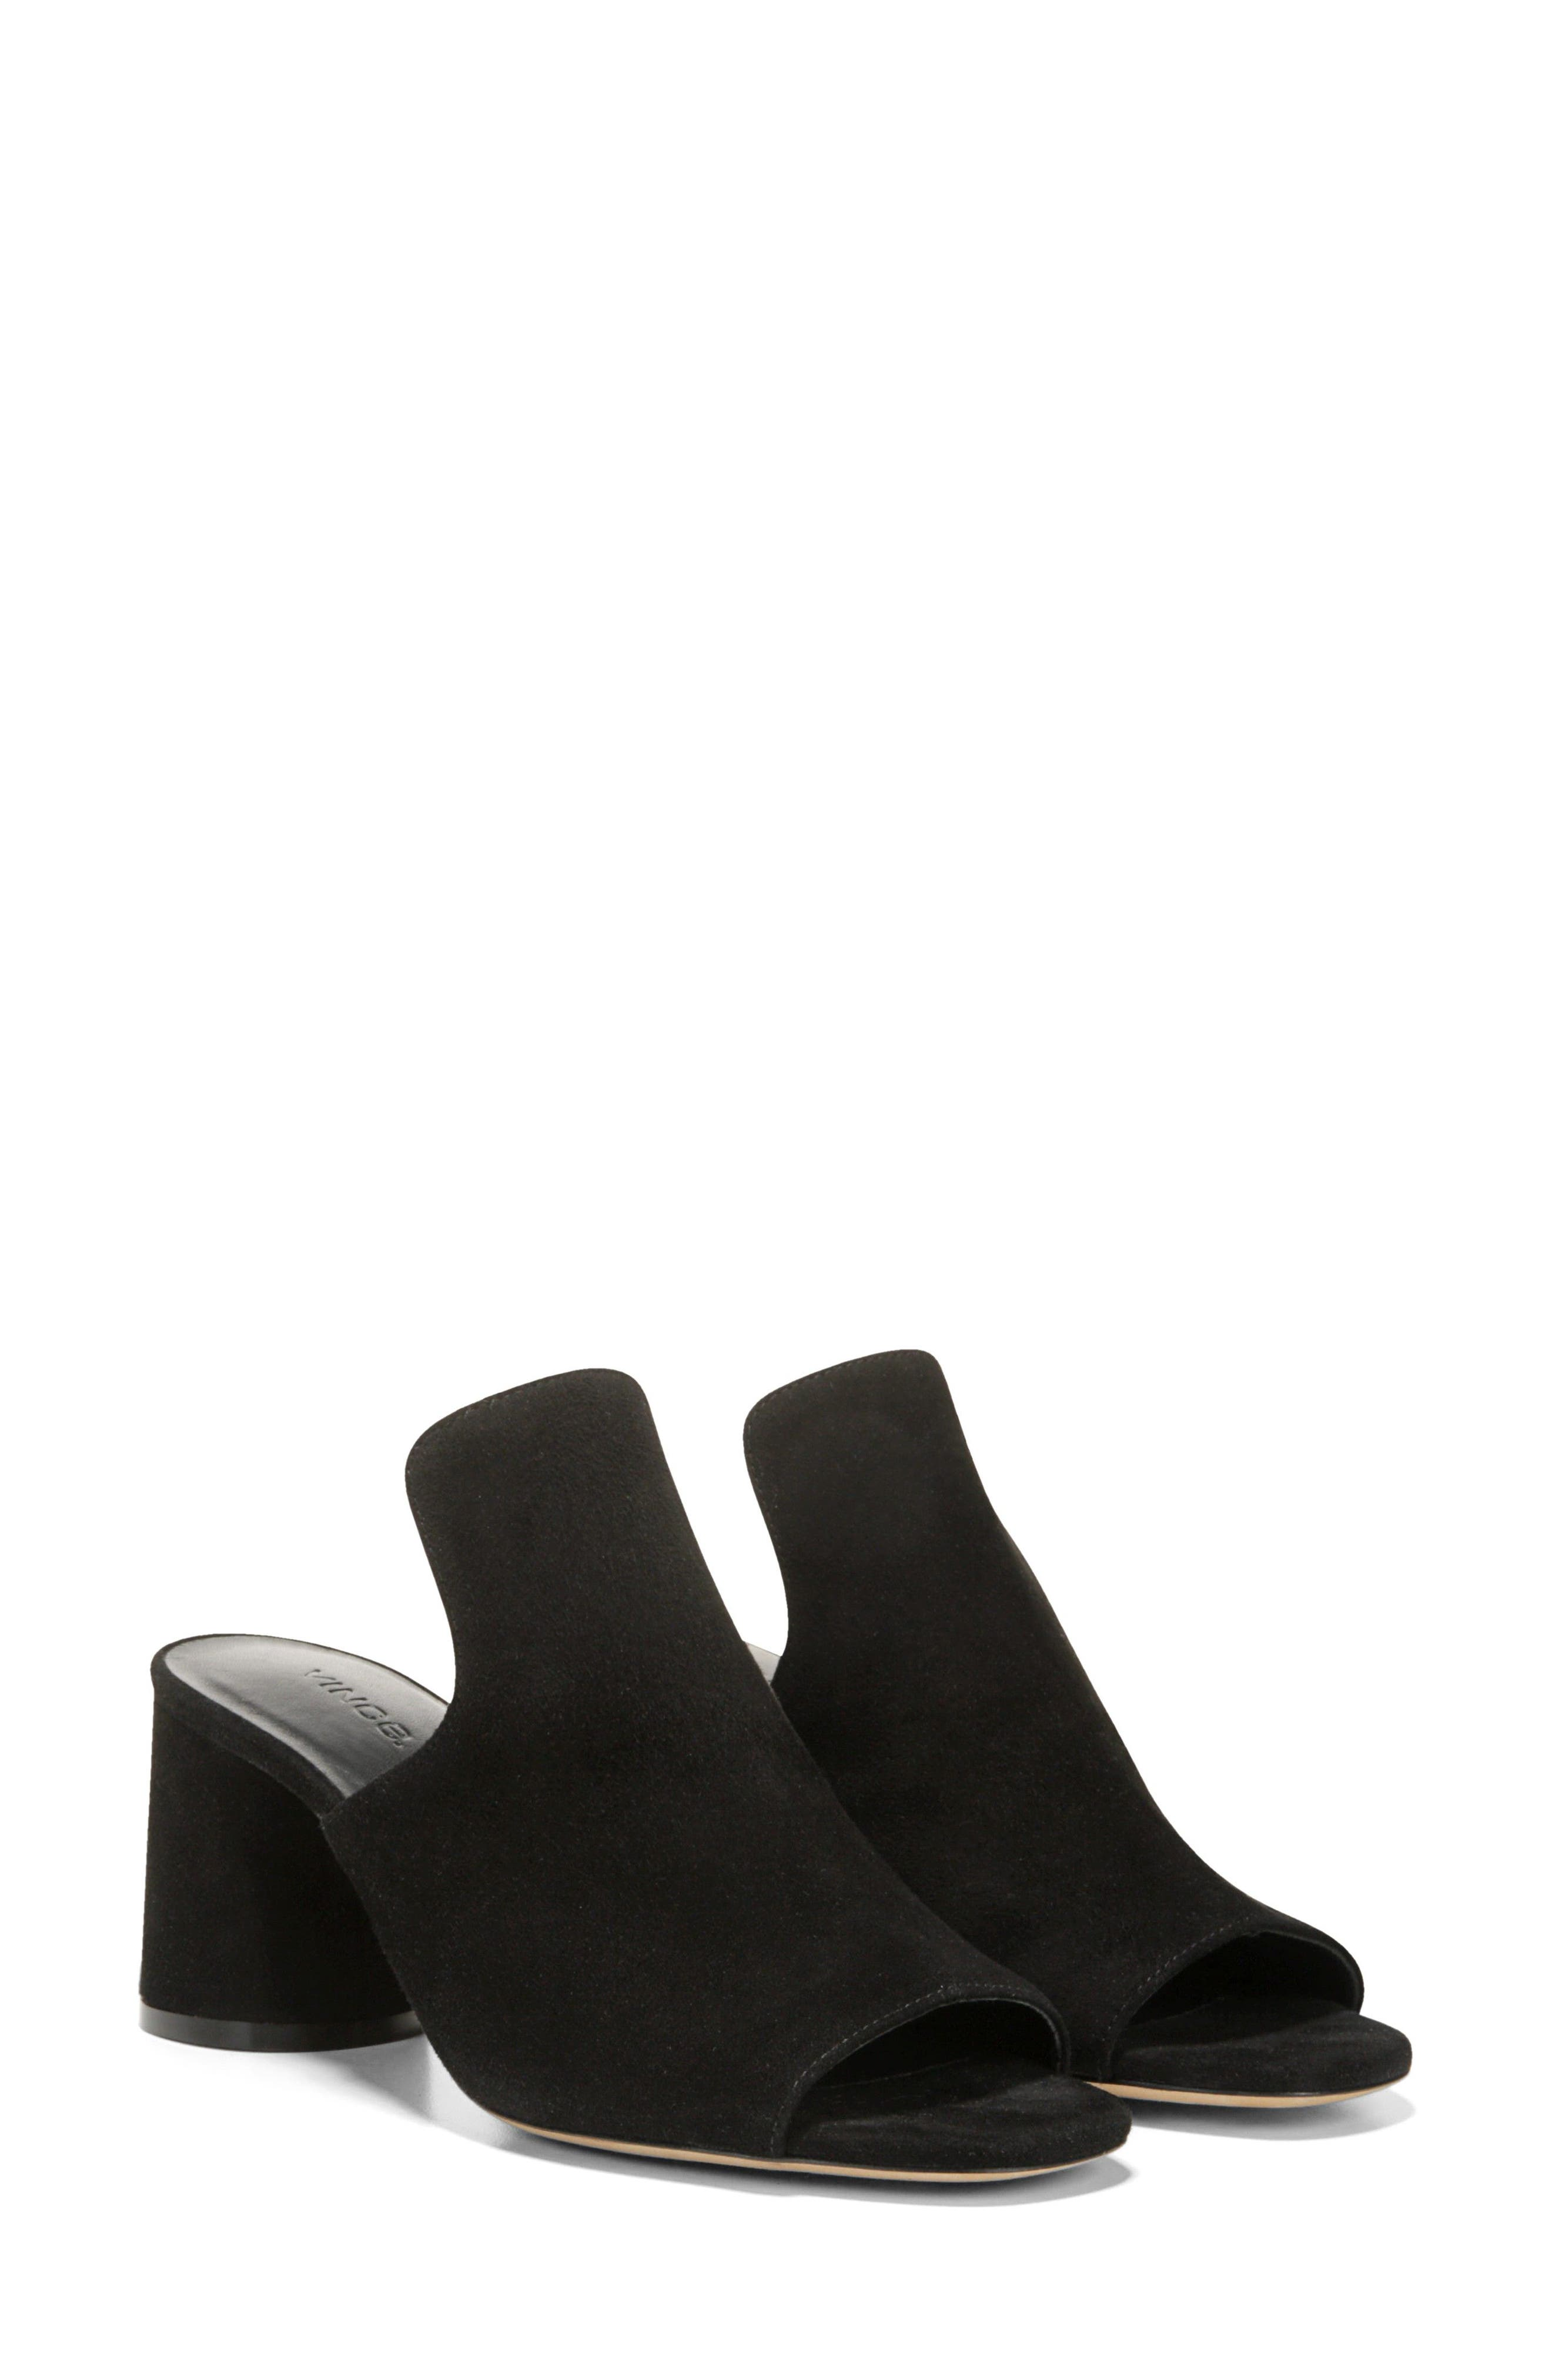 Tanay Loafer Mule,                             Alternate thumbnail 8, color,                             BLACK SUEDE LEATHER